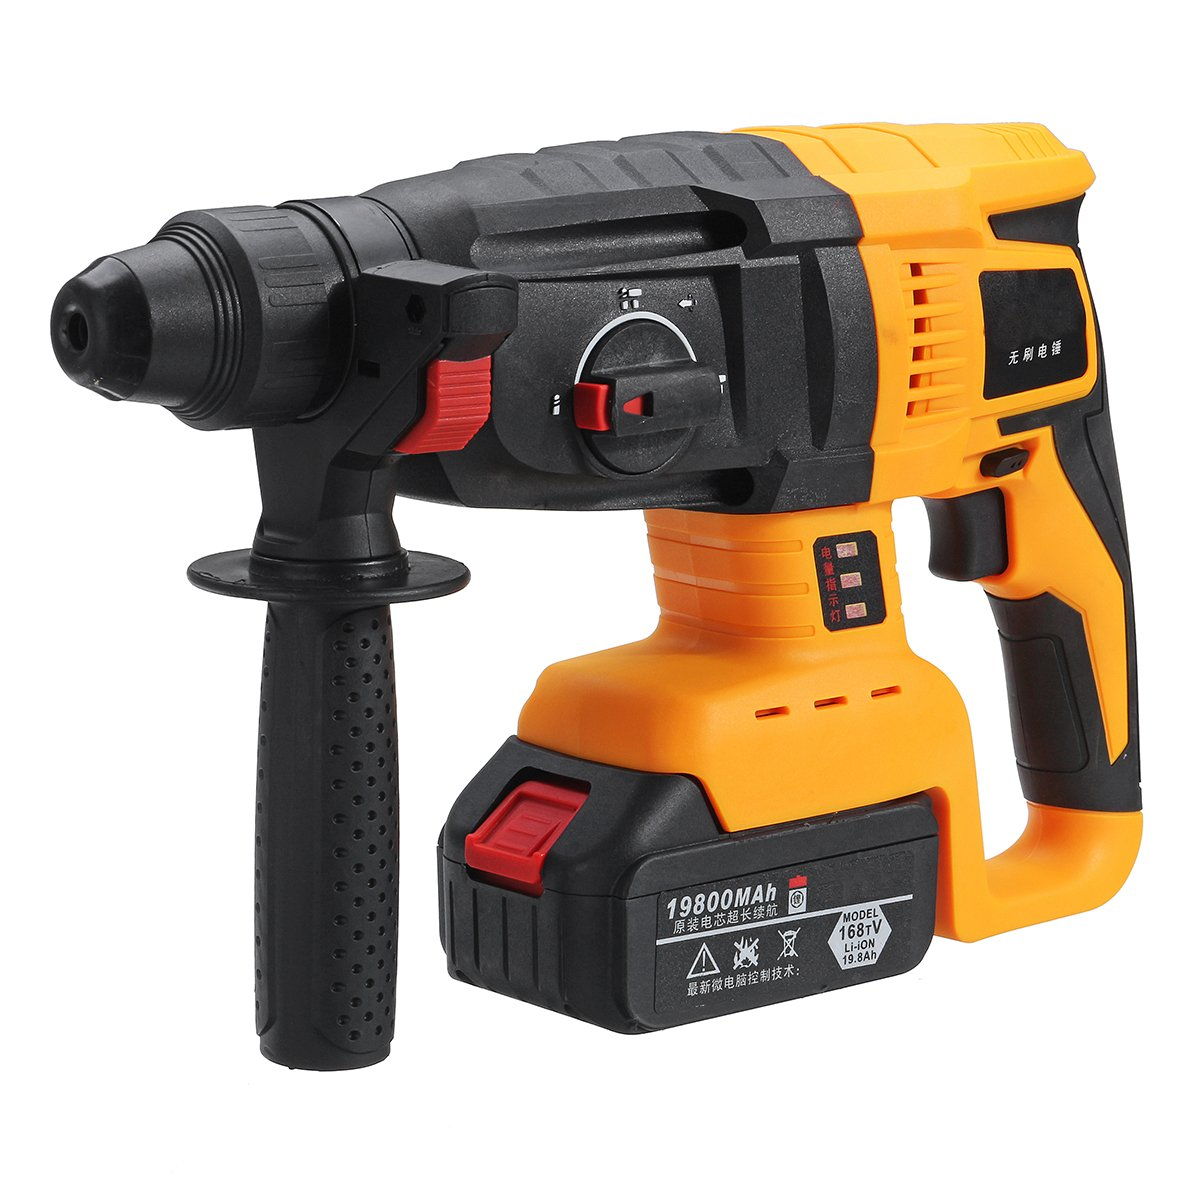 Industrial Multifunction Rechargeable 110-240V Electric Cordless Brushless Hammer Impact Power Drill with 1 or 2 Lithium Battery